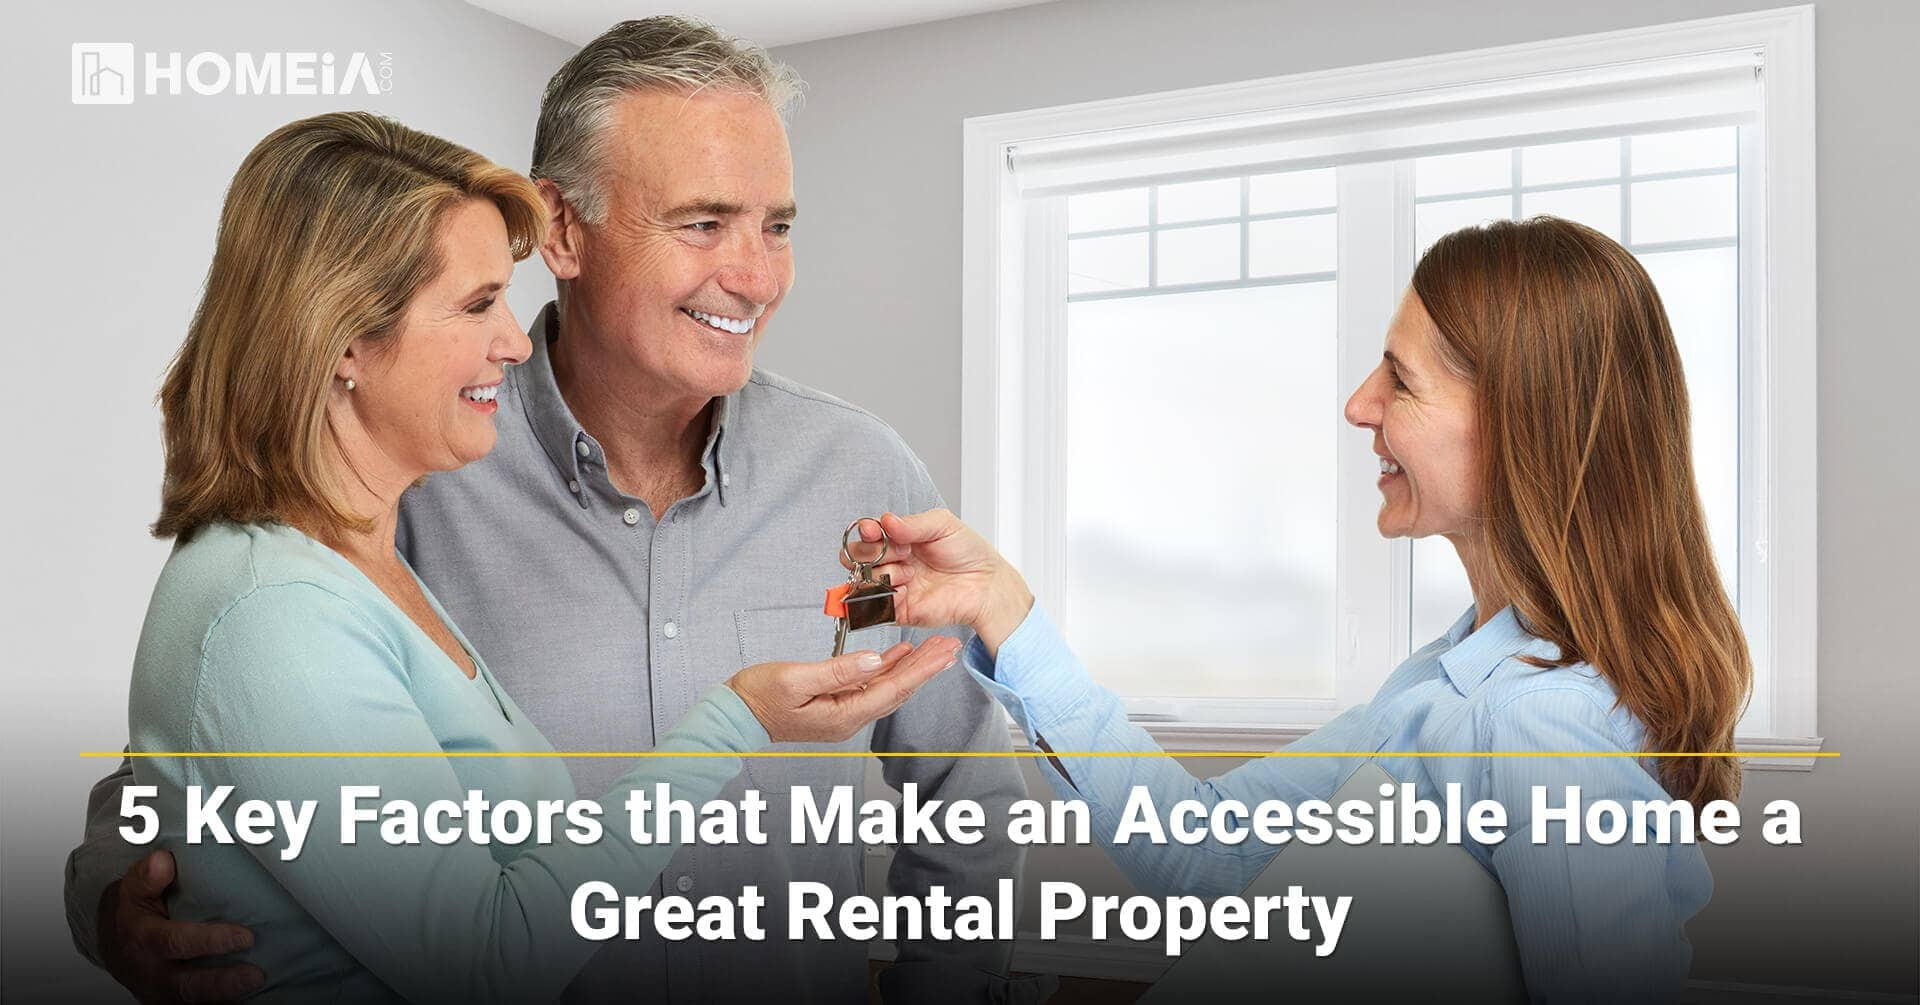 5 Key Factors that Make an Accessible Home a Great Rental Property